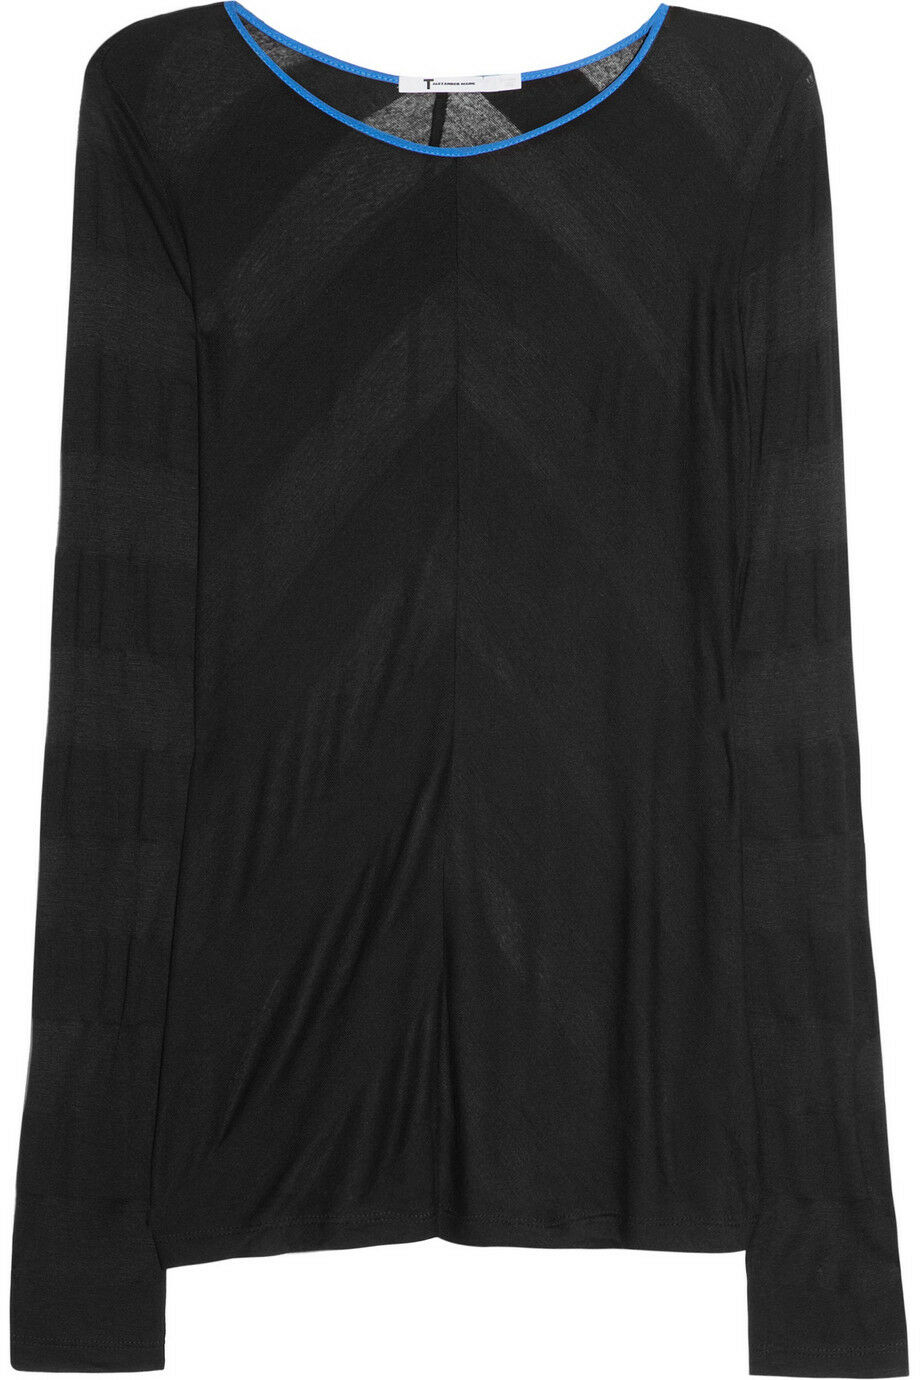 BNWT T BY ALEXANDER WANG SHADOW STRIPED JERSEY TOP Sz XS